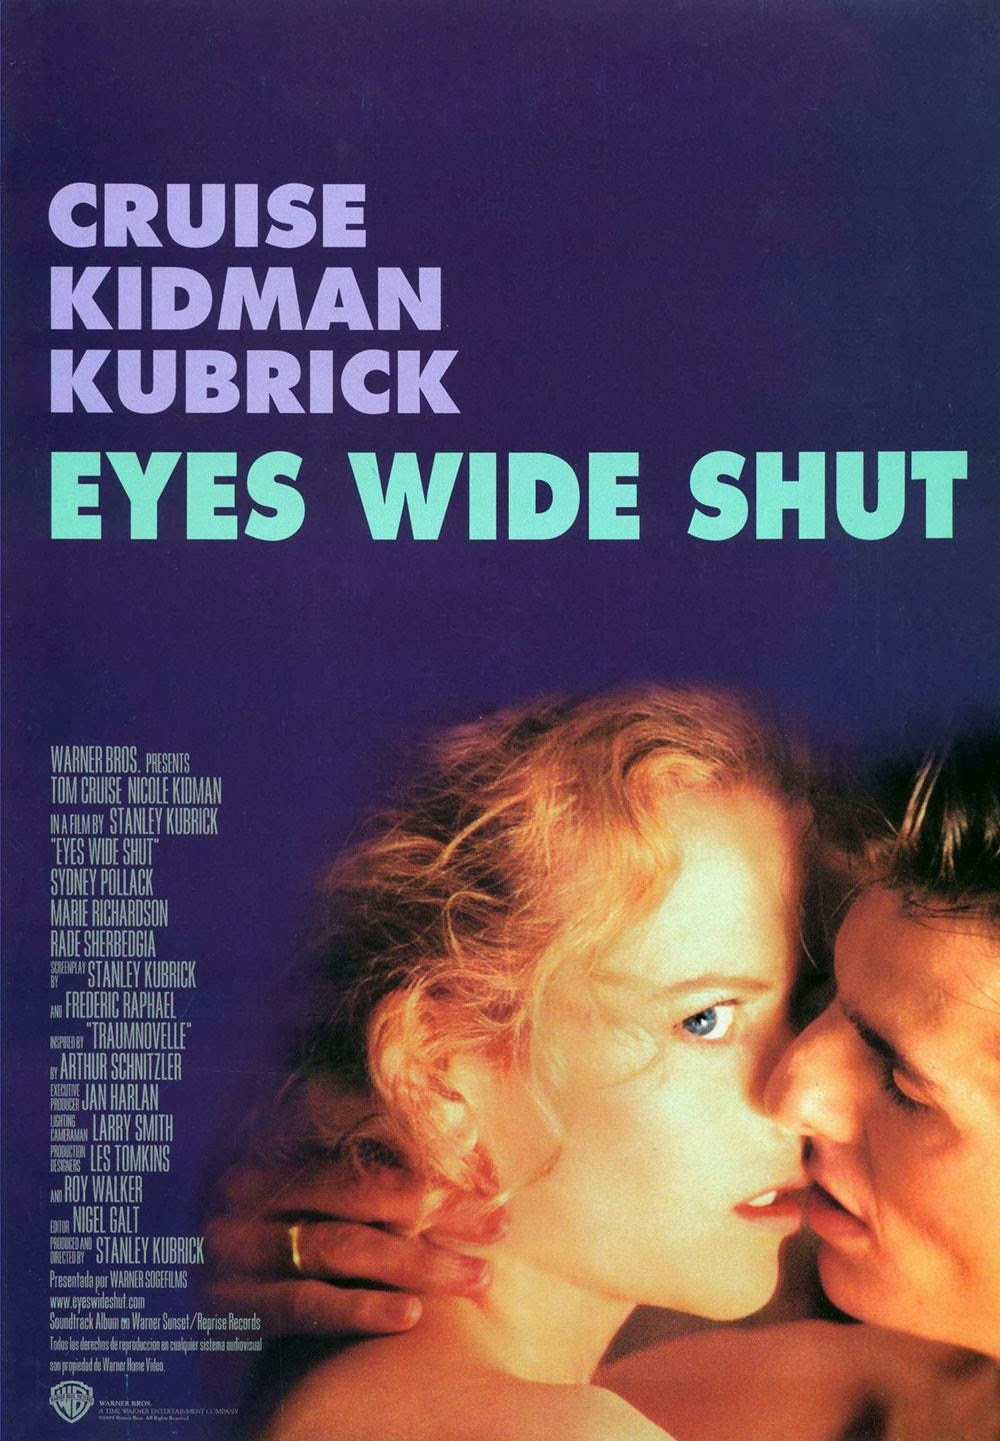 """eyes wide shut essay The held essays on visual art carroll dunham: eyes wide shut by  alexi worth """"one more question,"""" announced the moderator,."""